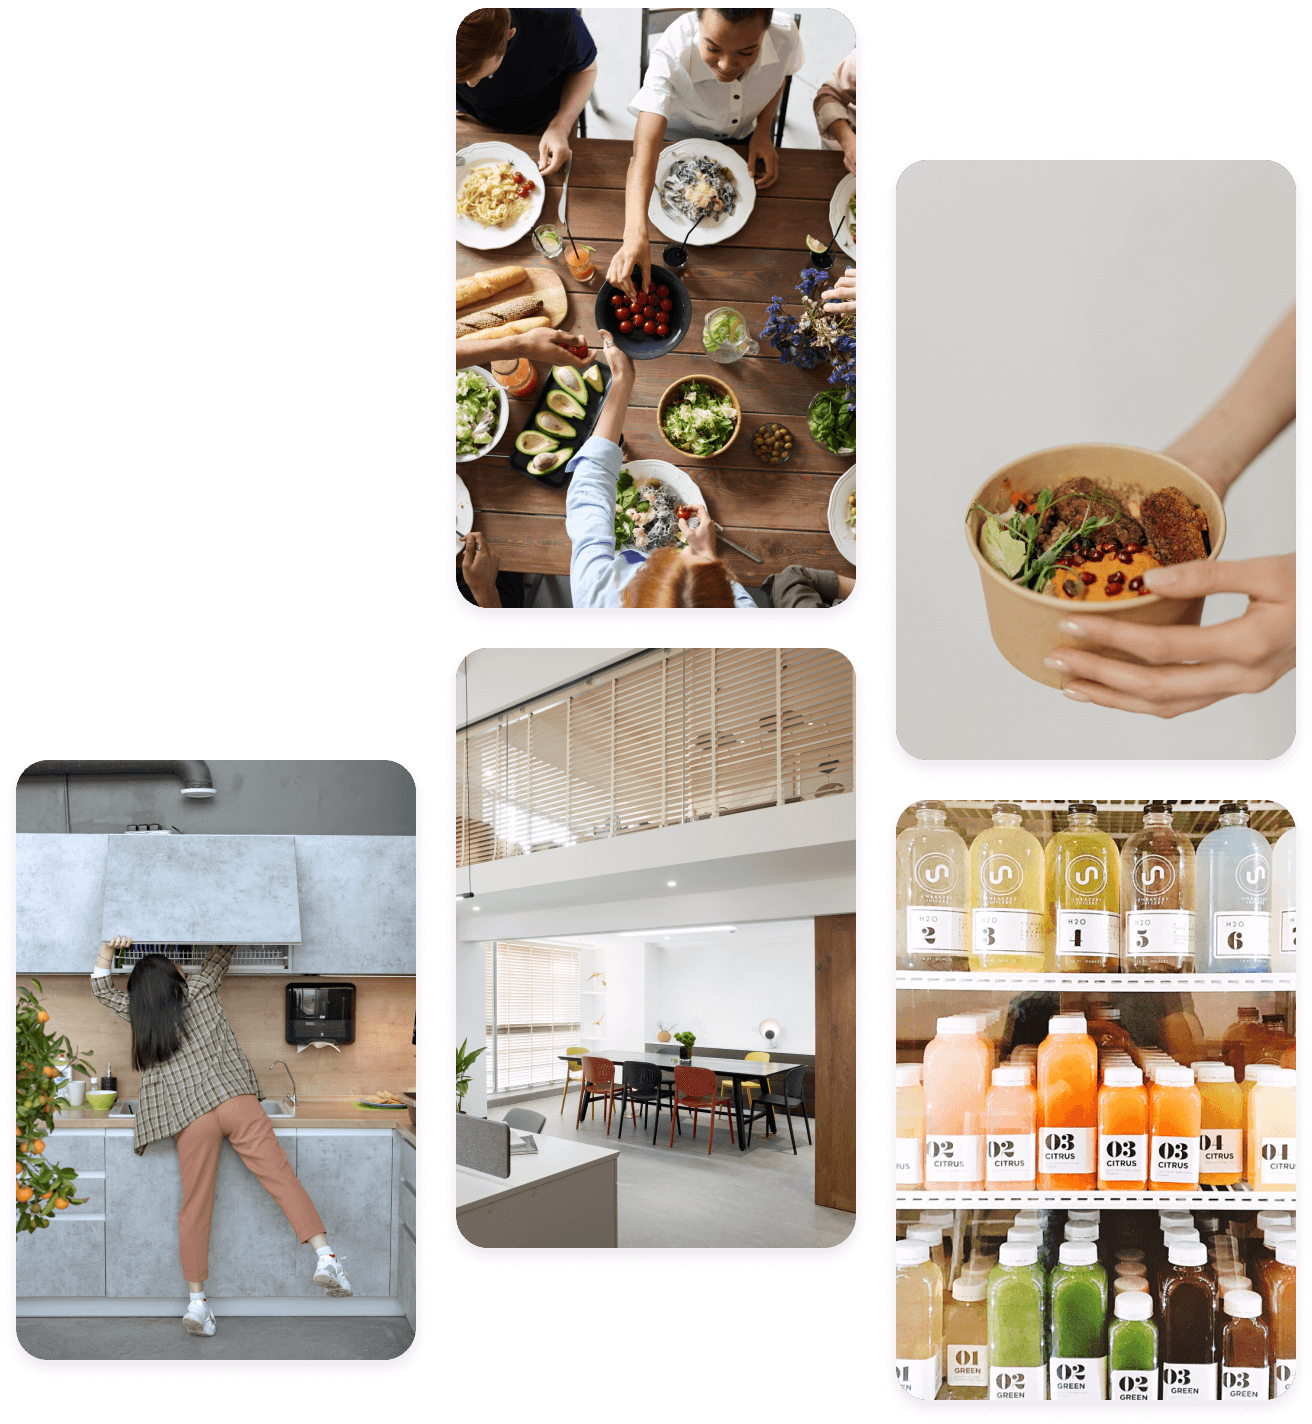 Series of images showing food, packaged snacks and kitchen space in the office